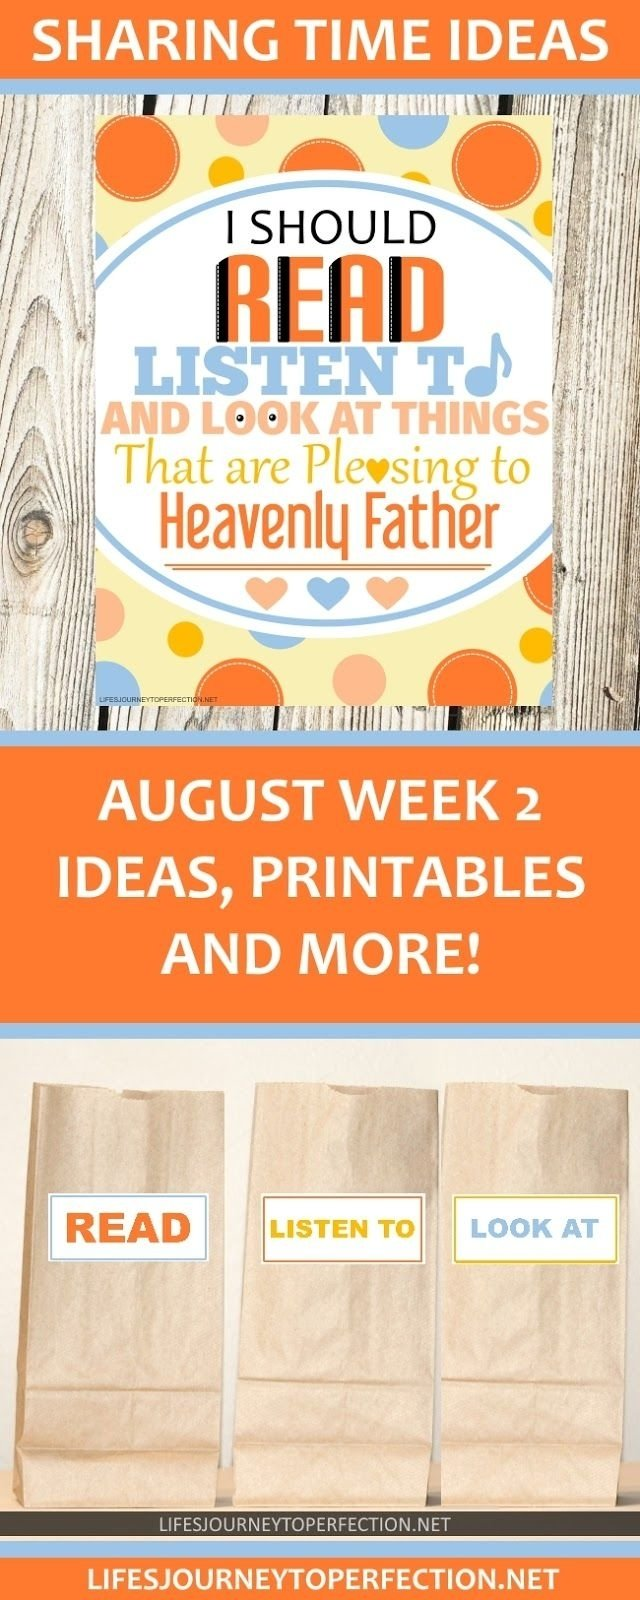 10 Attractive Lds Primary Sharing Time Ideas 2017 lds sharing time ideas for august week 2 i should read listen 2020